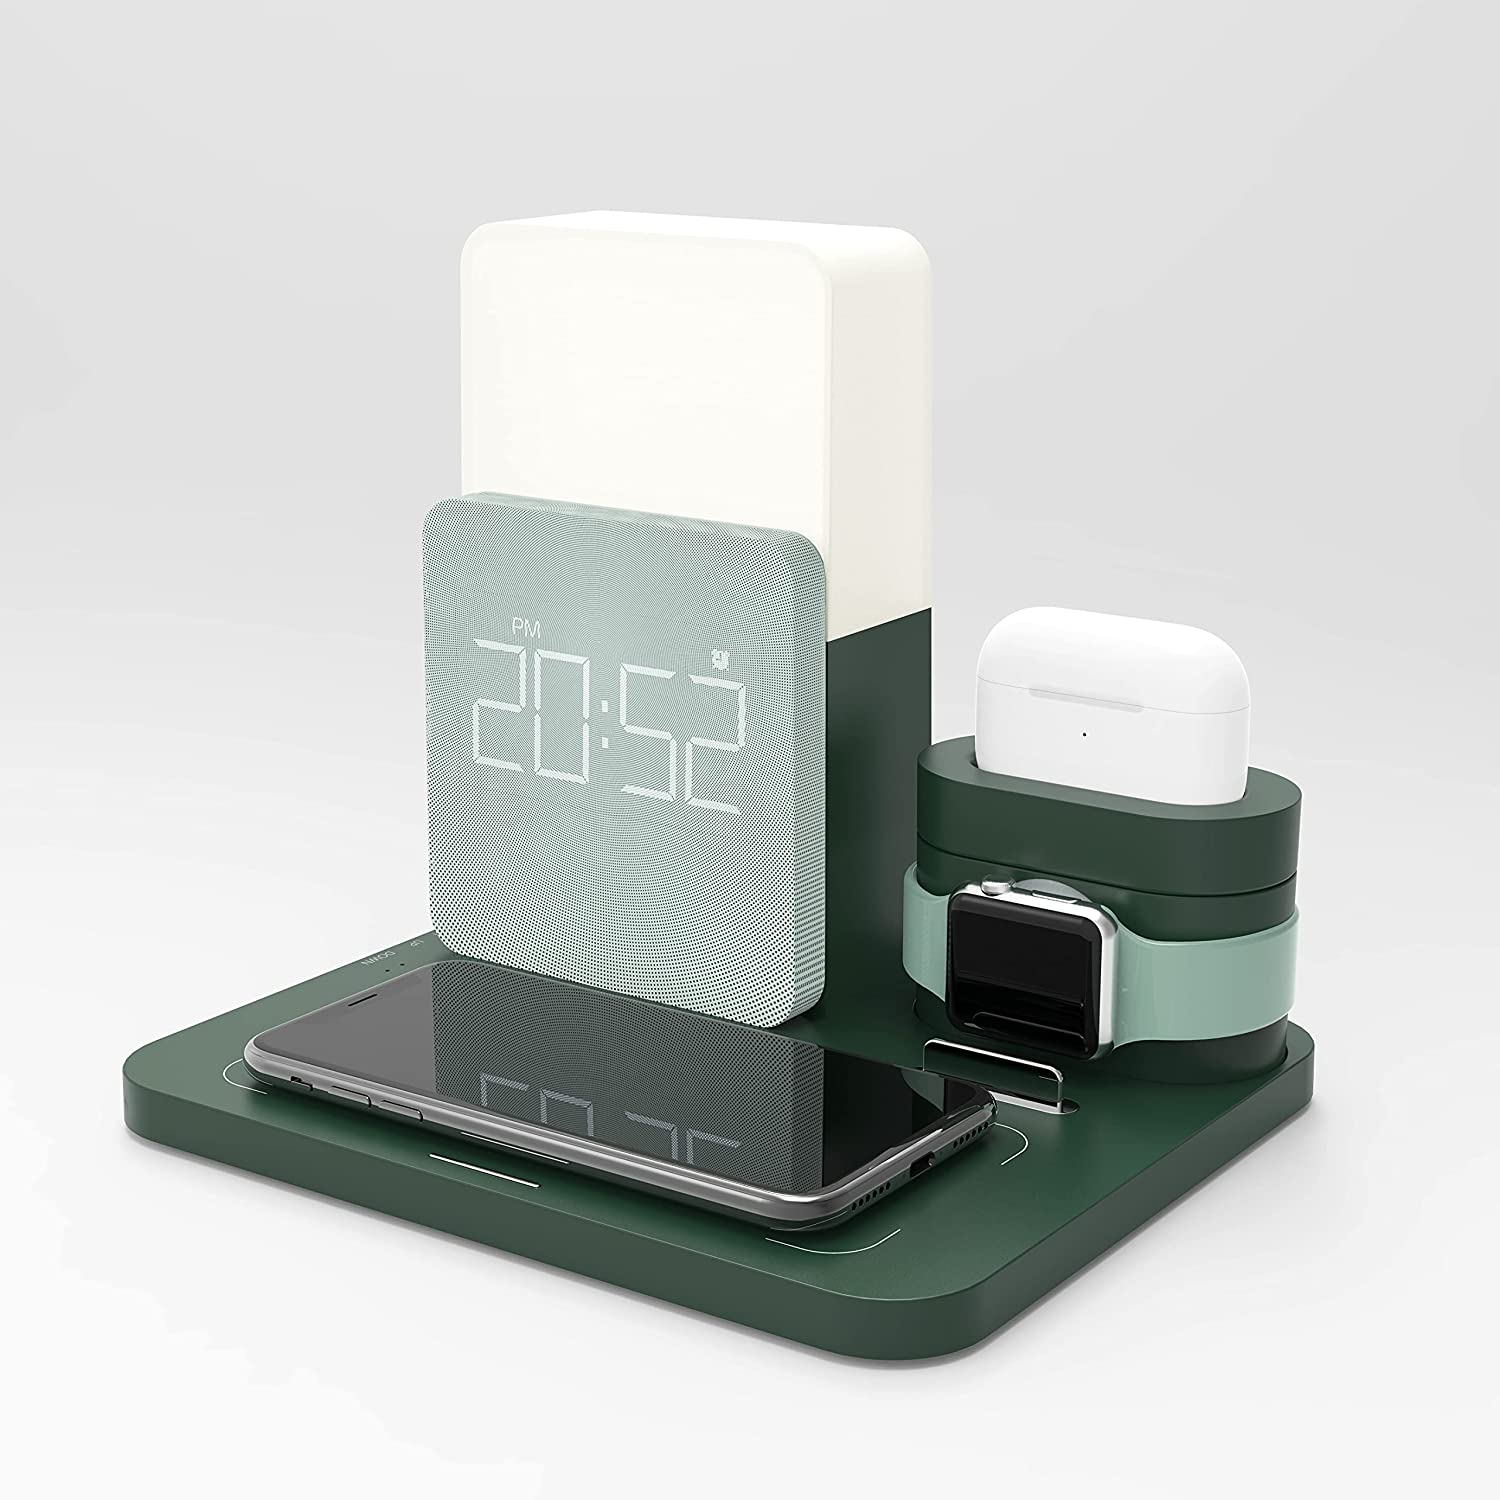 Alarm Clock with Wireless Charging,6 in 1 Wireless Charging Station Compatible with iPhone,Apple Watch&Airpods,LED Desk Lamp with Wireless Charge Block for Multiple Devices,Alarm Clock for Bedroom